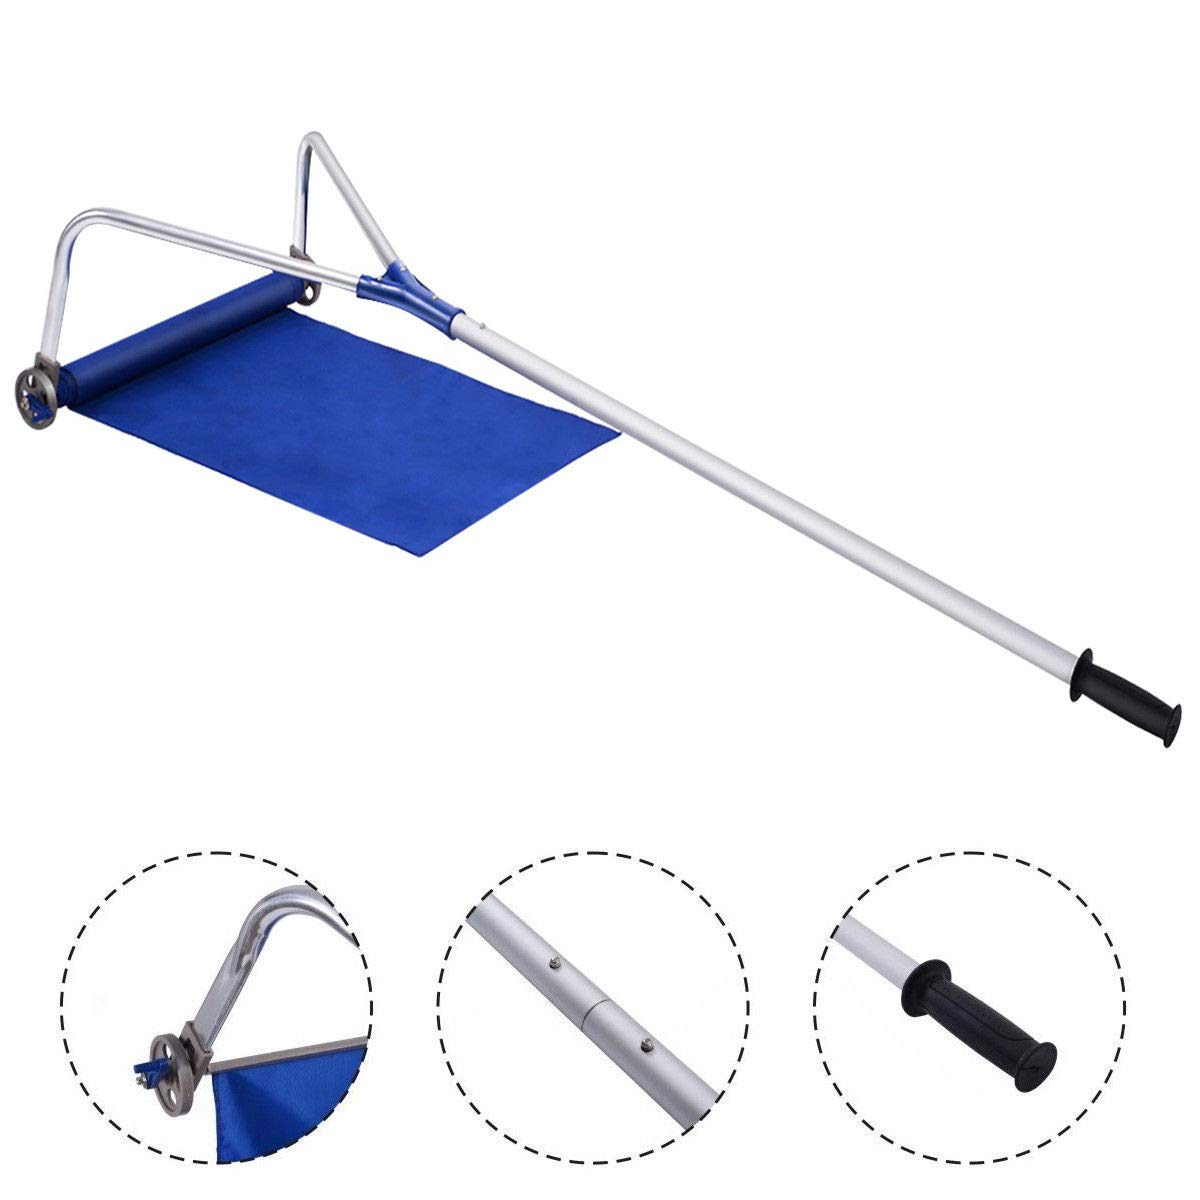 Lightweight Roof Rake Snow Removal Tool 20FT Adjustable Telescoping Handle by Sanny